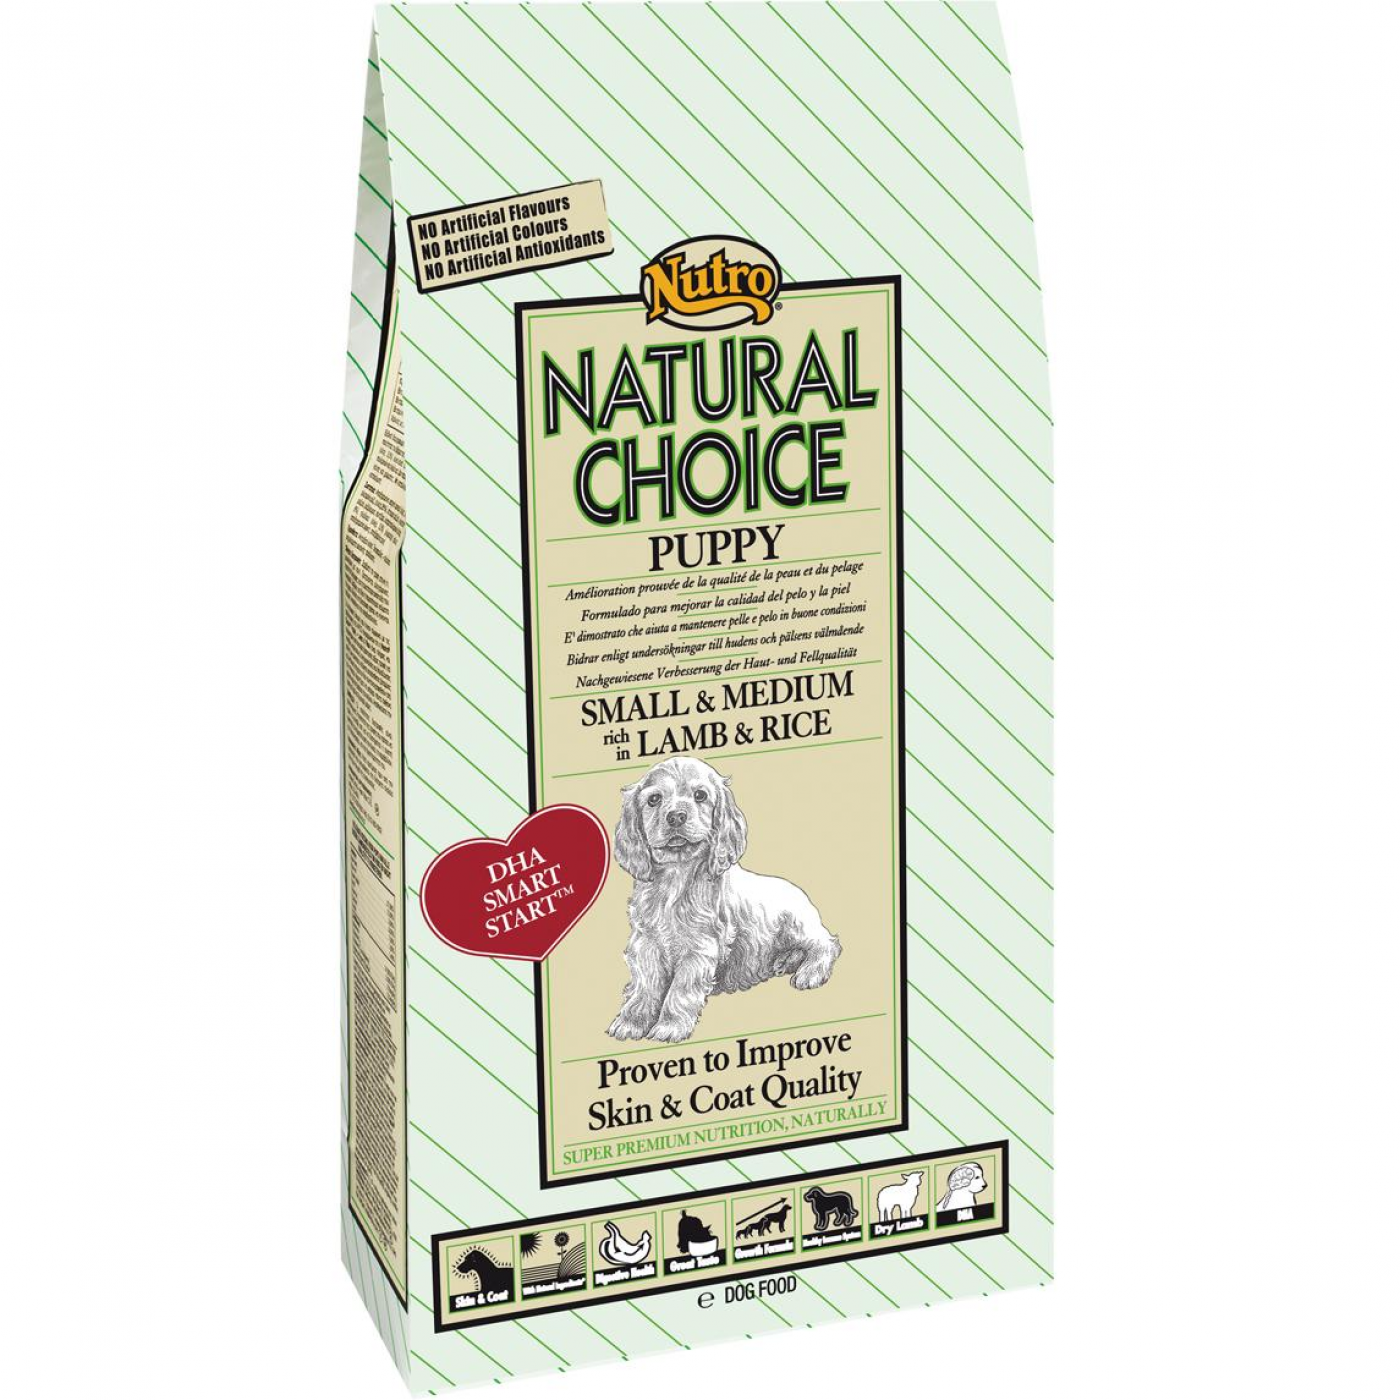 nutro natural choice essay Nutro natural choice chicken and rice dry dog food 079105111836 nutro natural choice indoor dry cat food 14lb 079105100229 nutro ultra puppy canned dog food 12 pack 079105102483 greenies 10072484 max 16 pound salm cat food 079105103367 nutro weight management small breed dry dog food.